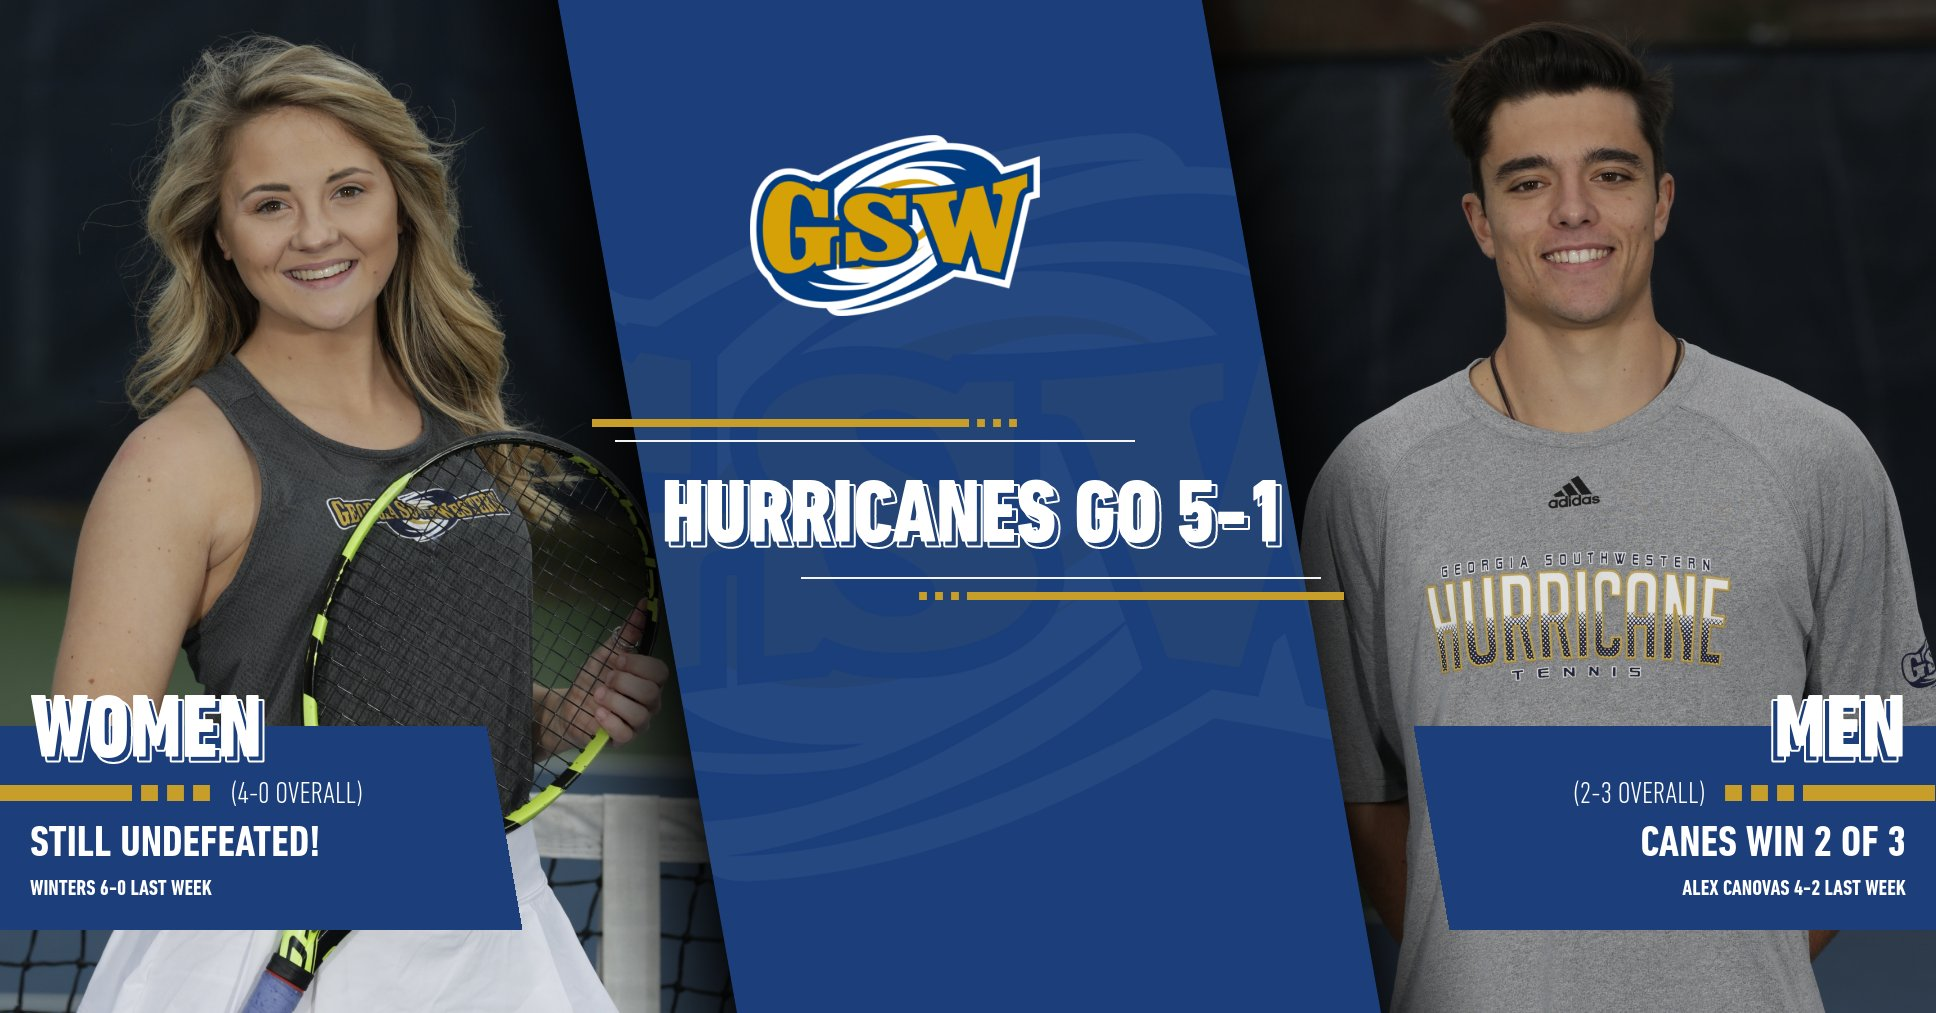 Weekend Recap: Lady Canes Remain Undefeated, Men Win 2 of 3